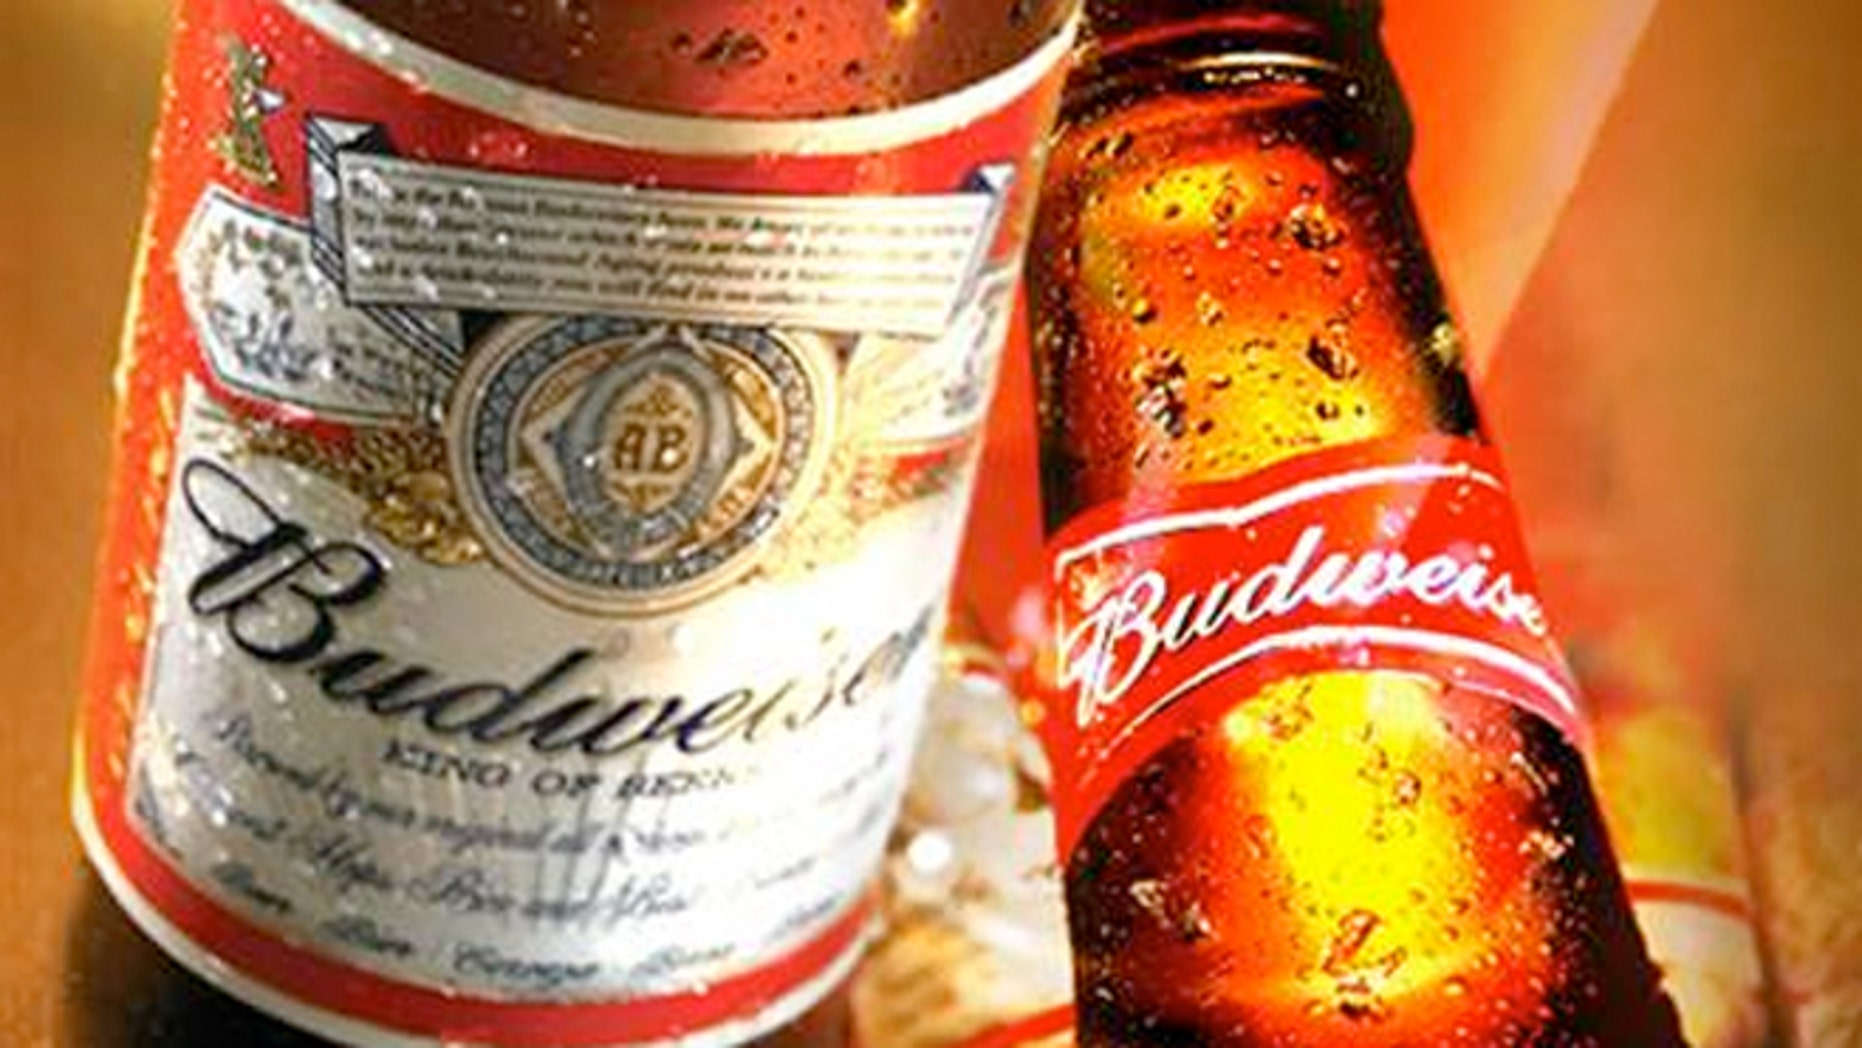 Budweiser to release a stronger beer fox news - Budweiser beer pictures ...